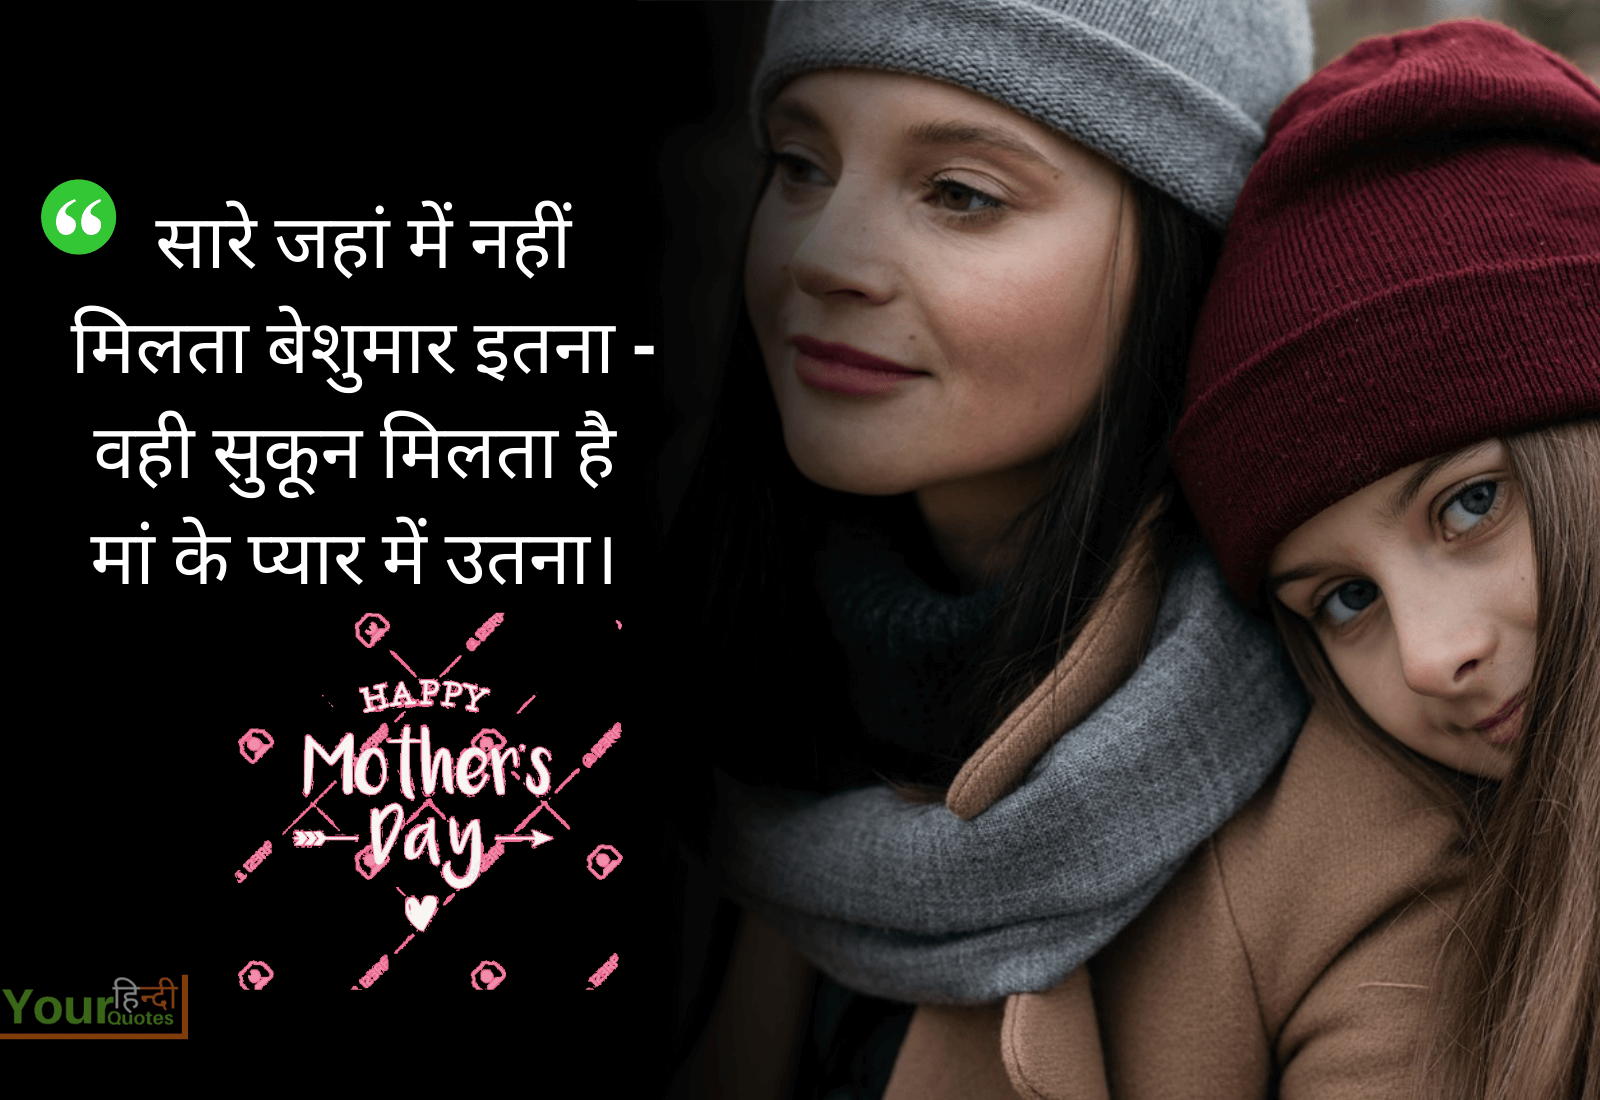 Happy Mothers Day Hindi Images